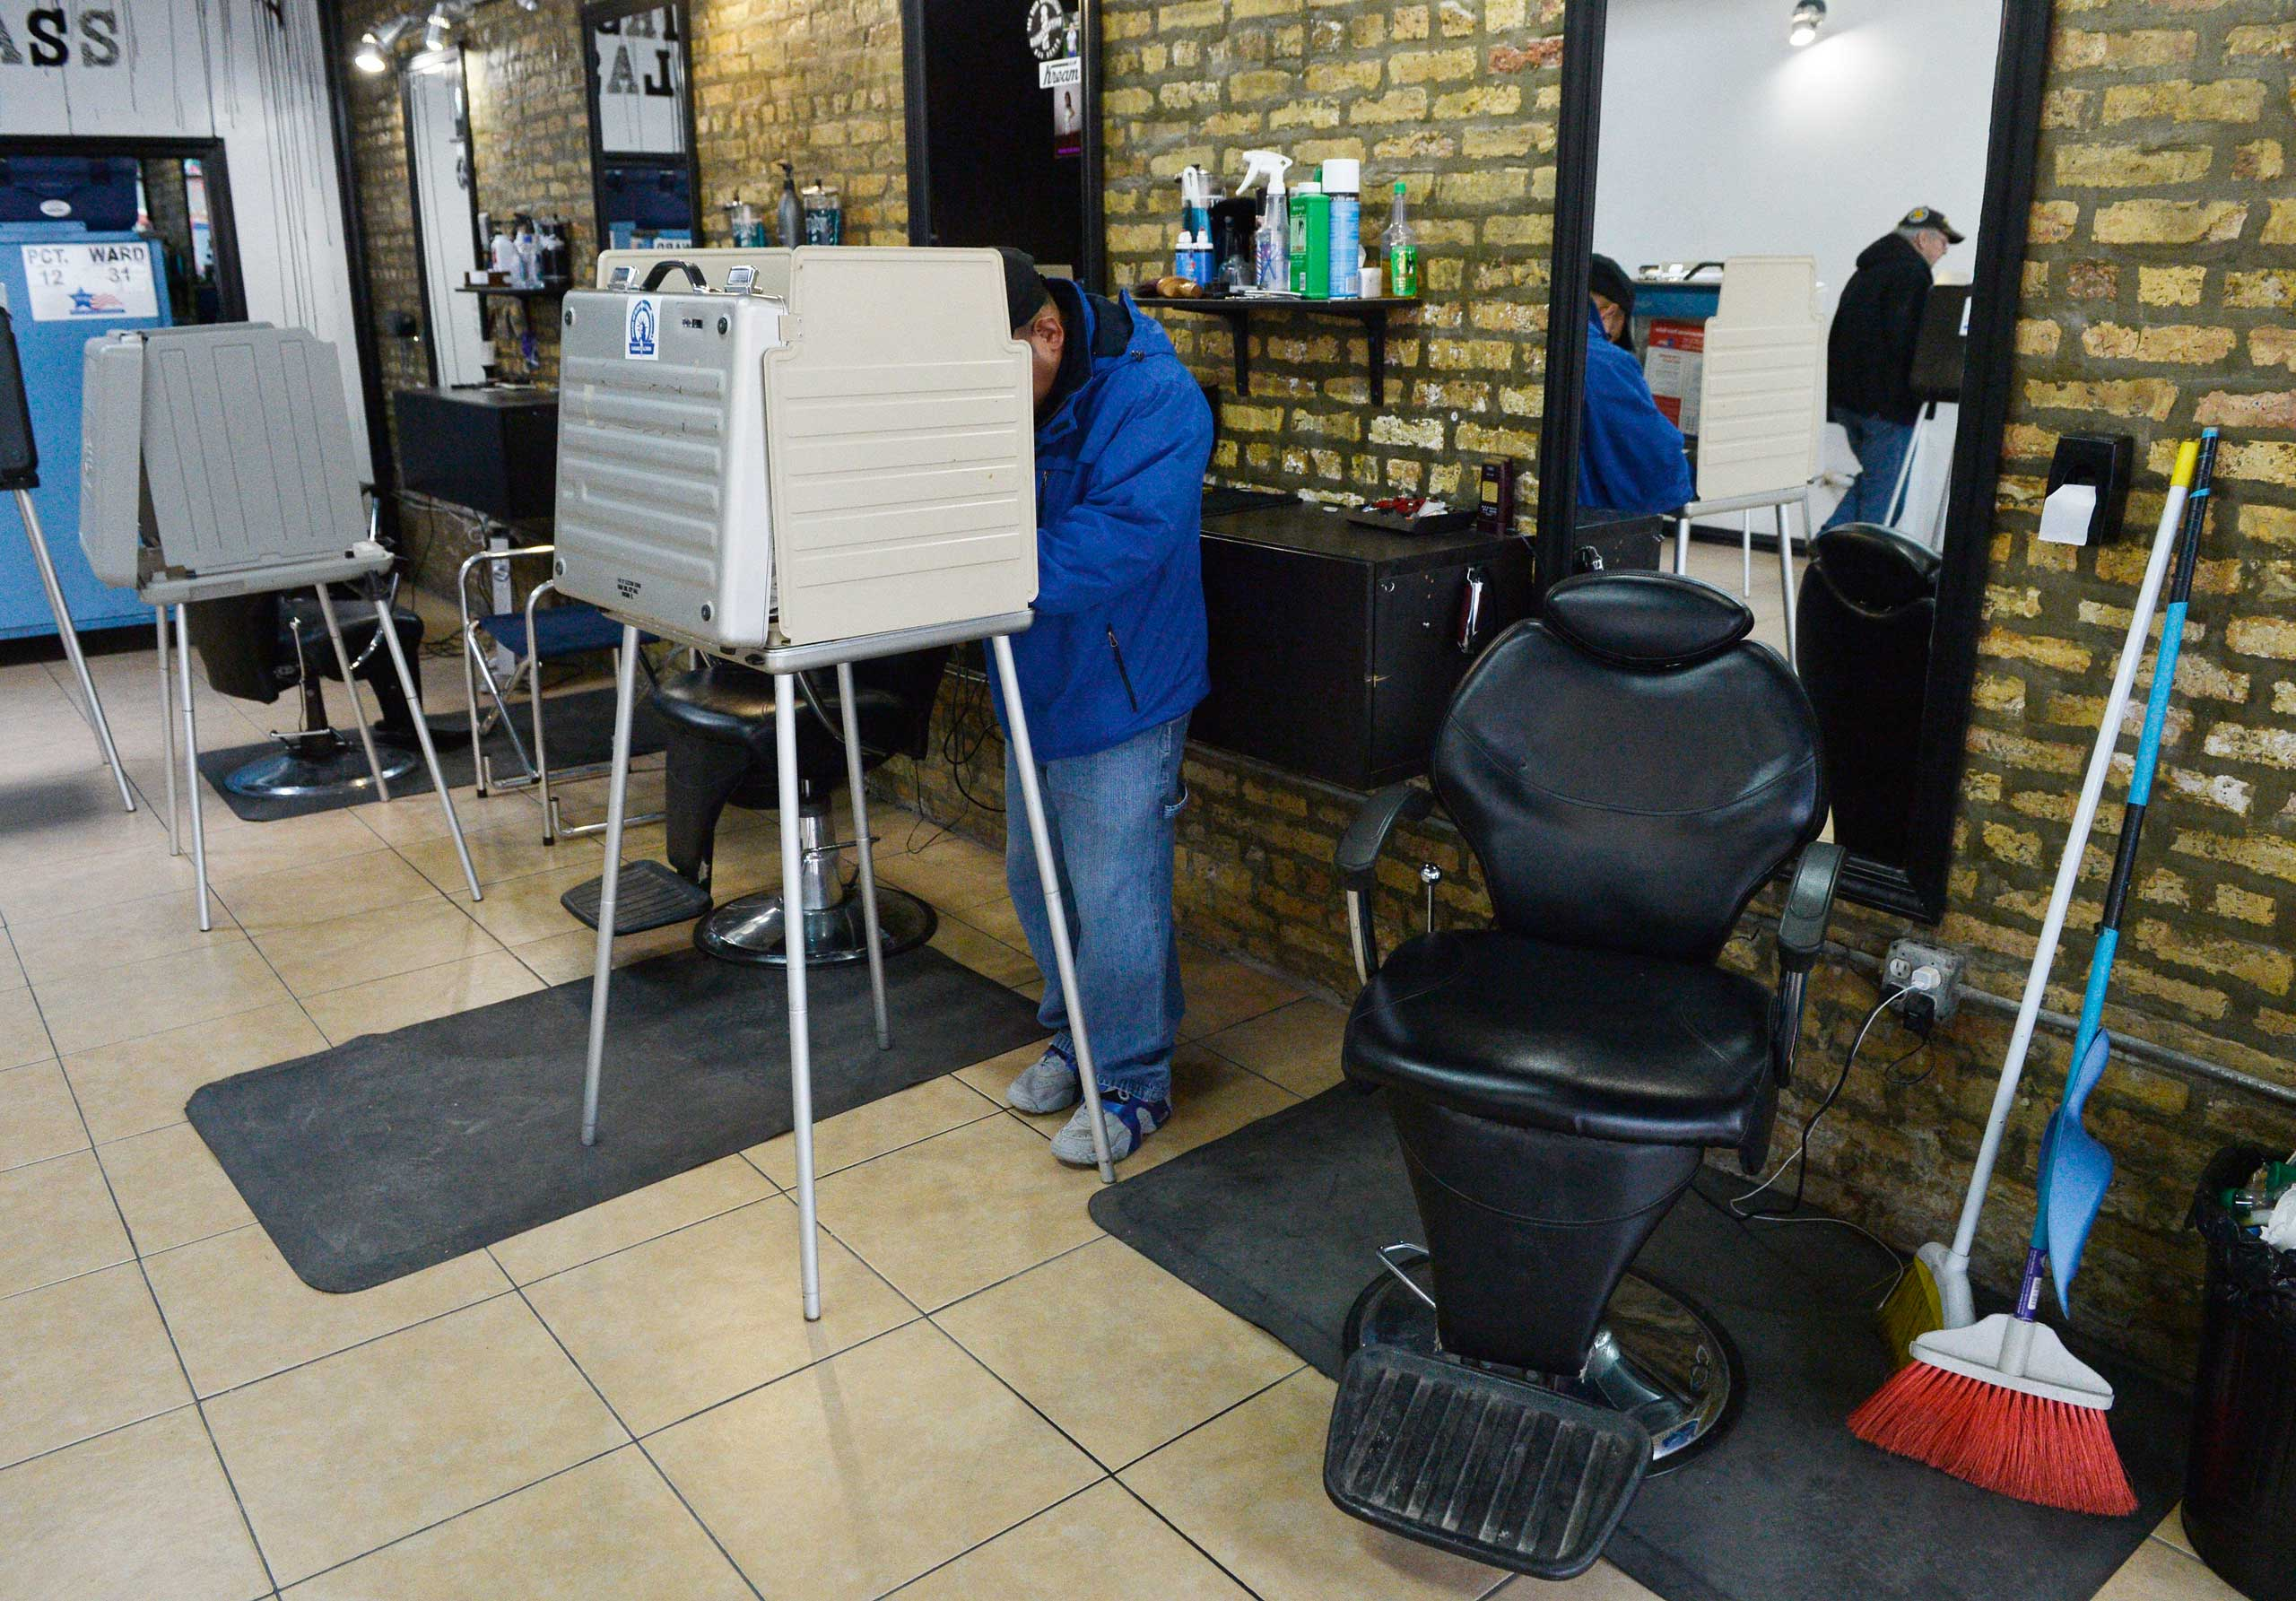 A voter works on his ballot at First Class Barber Shop in Chicago on Nov. 4, 2014.